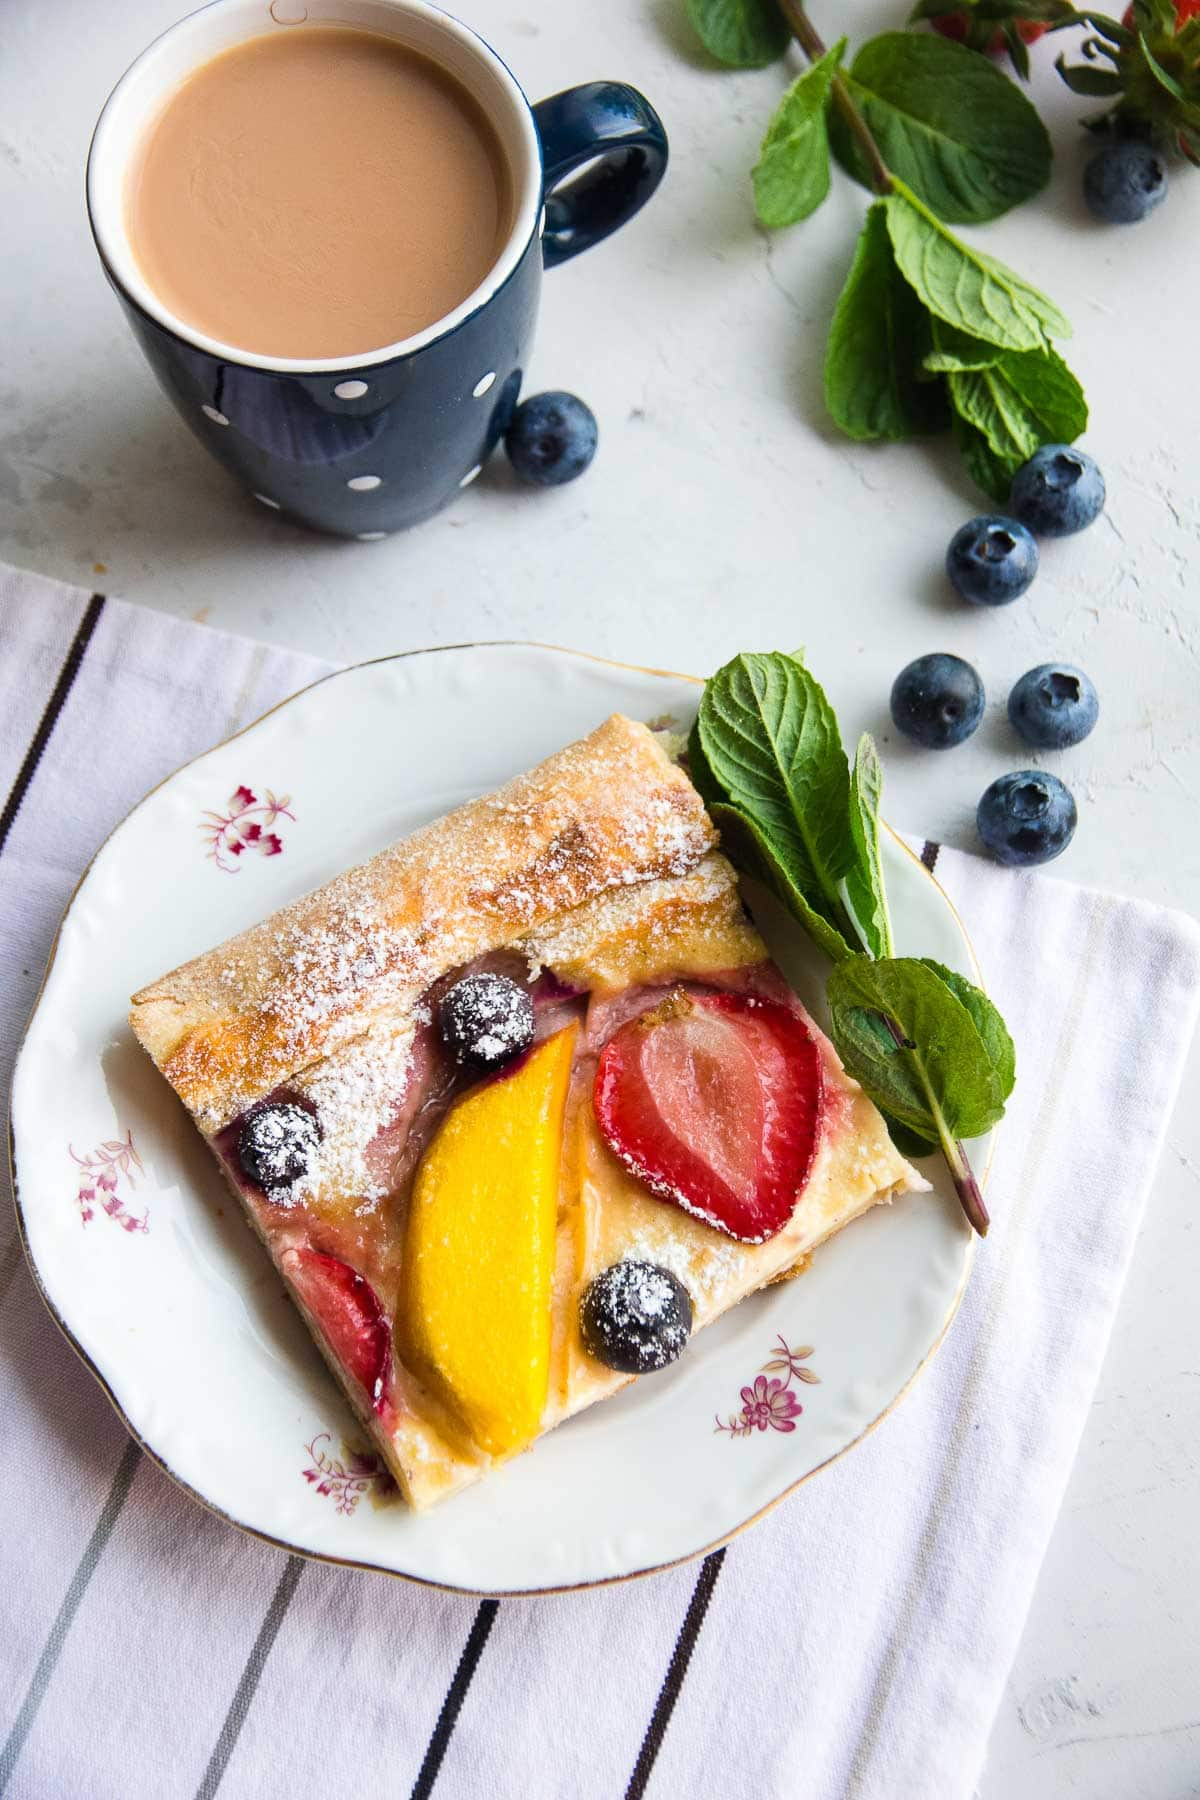 A slice of a healthy vegan fruit tart recipe made with mangoes, strawberries, and blueberries.